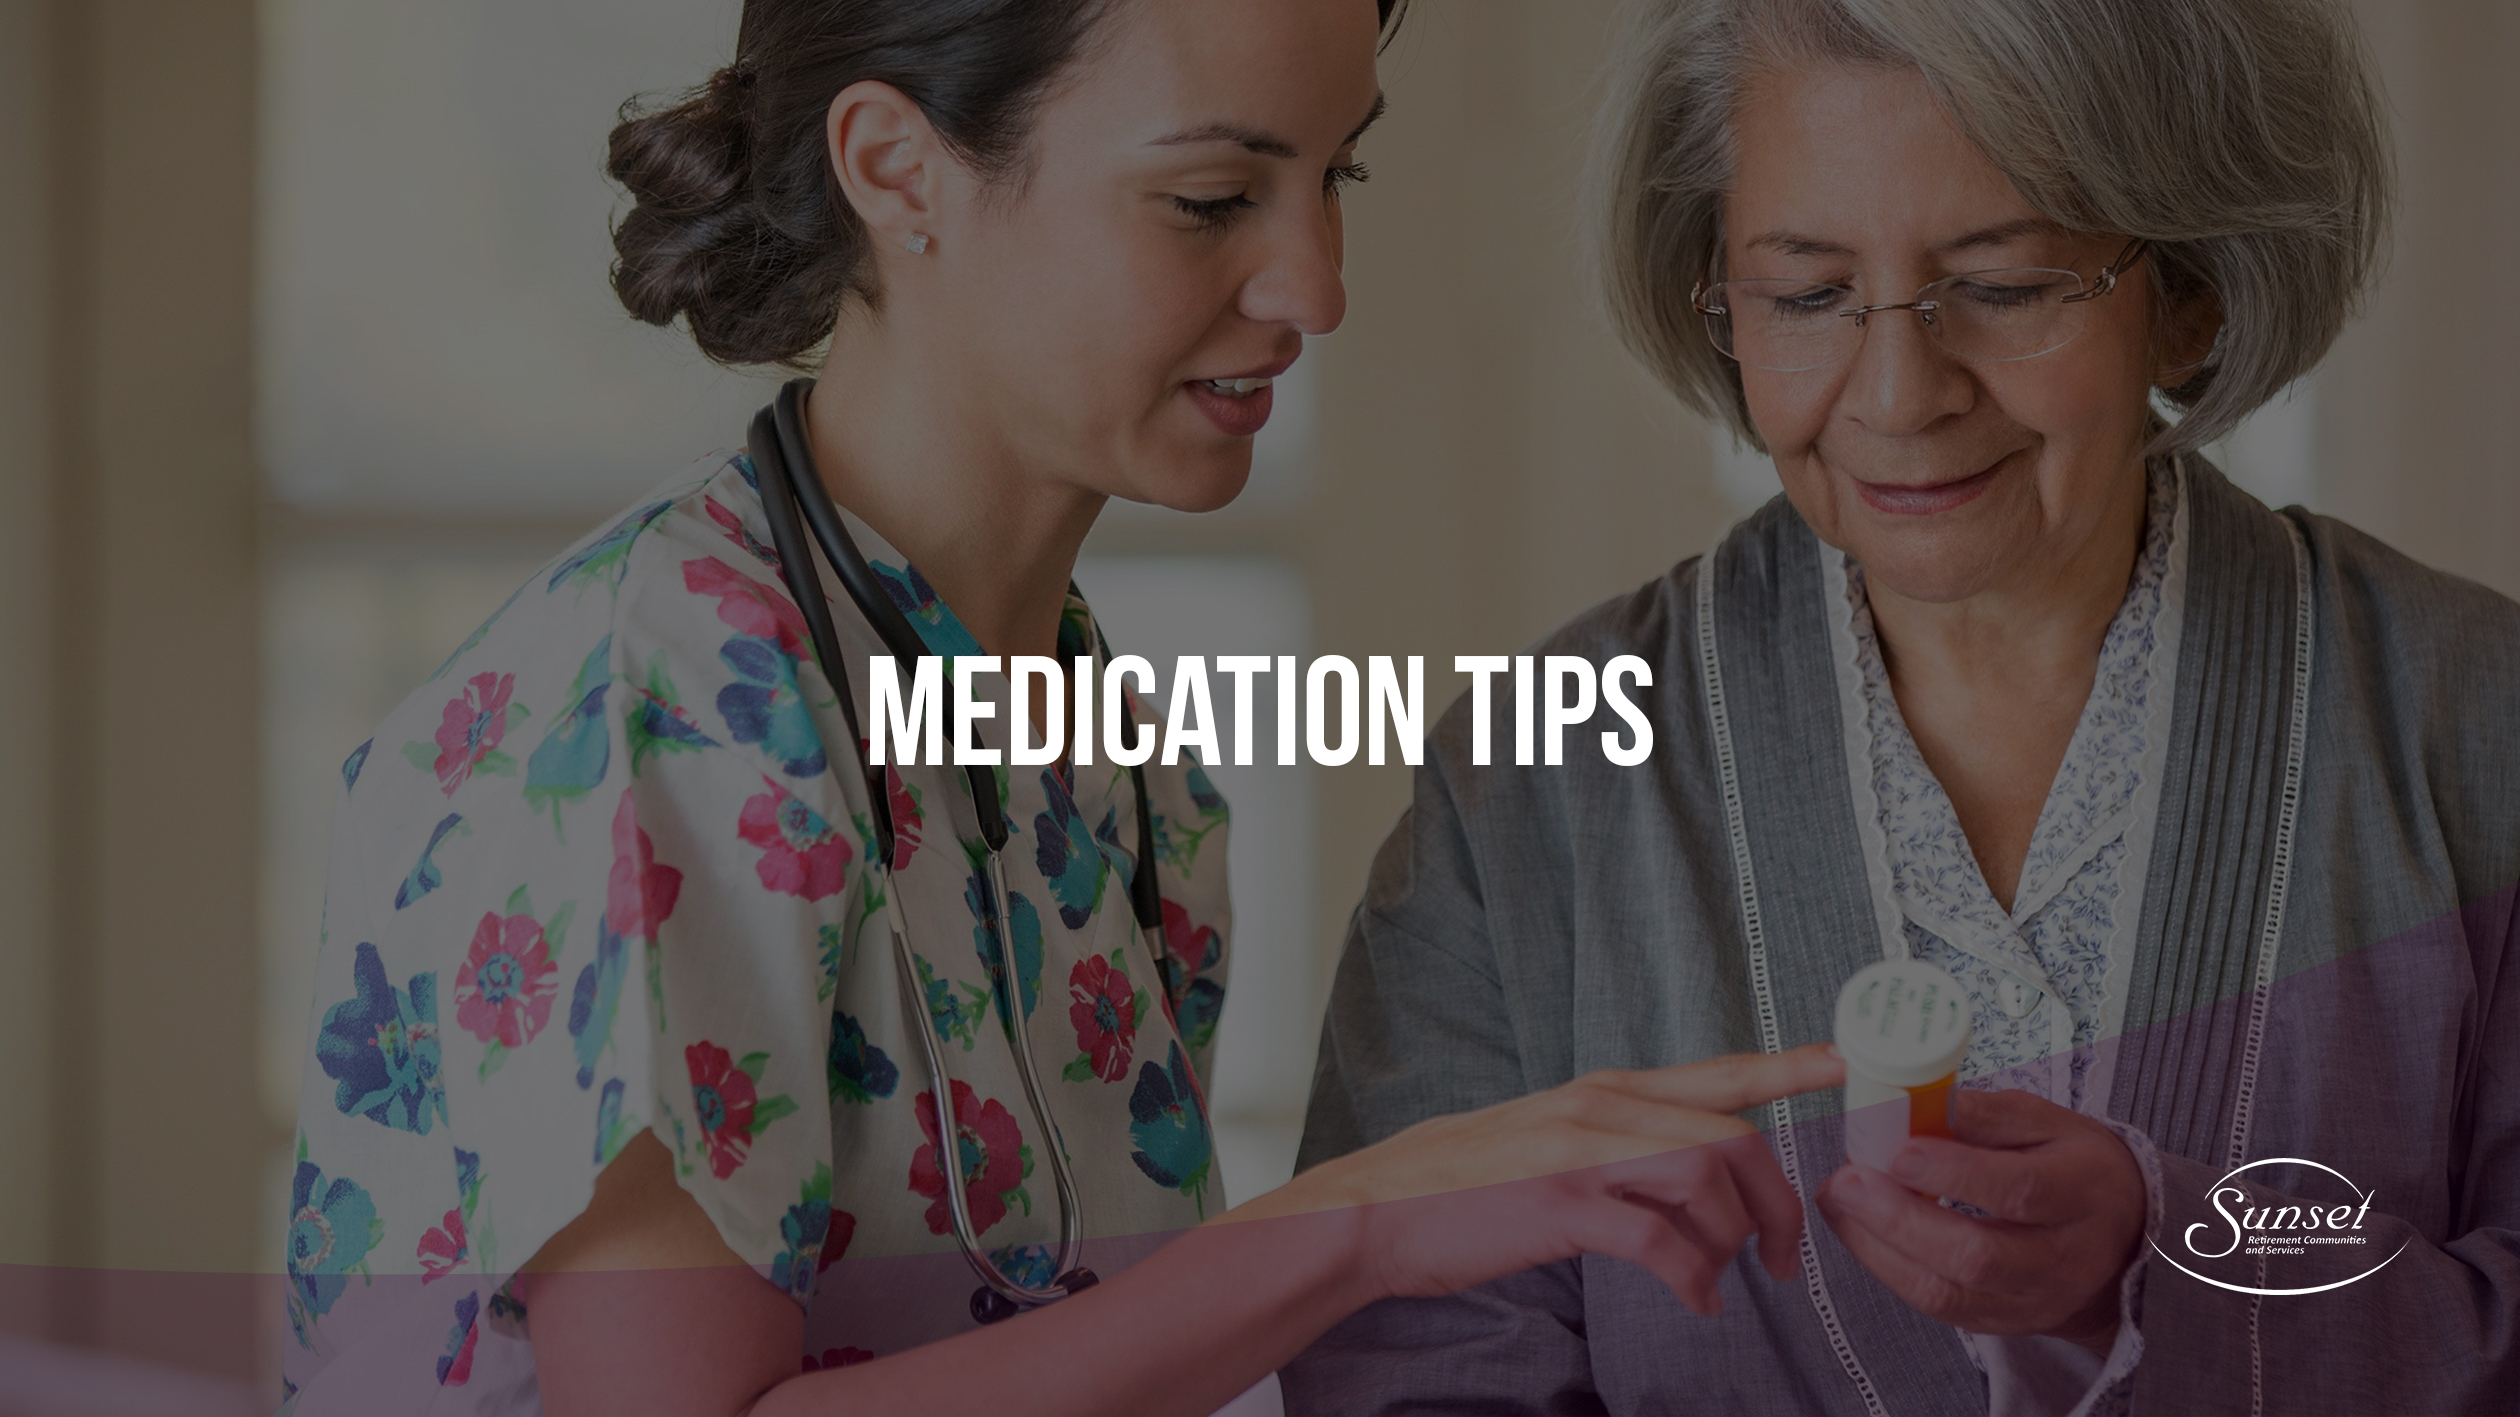 medication tips sunset communities